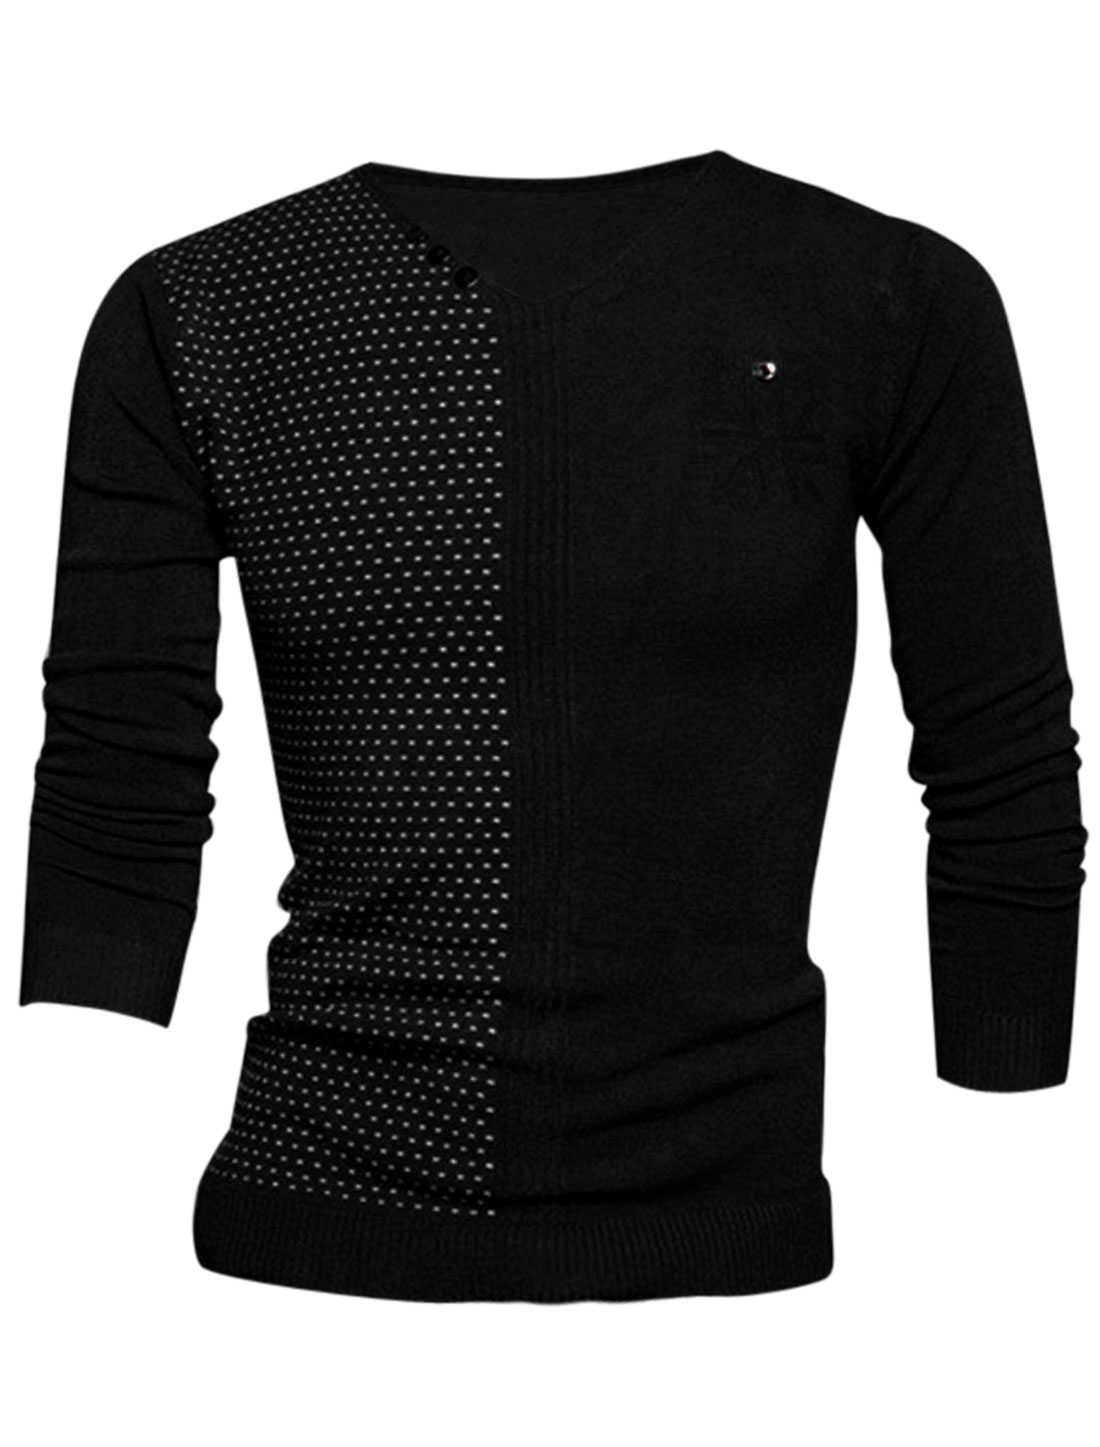 Men V Neck Novelty Prints Stitched Design Slim Fit Knit Shirt Black M